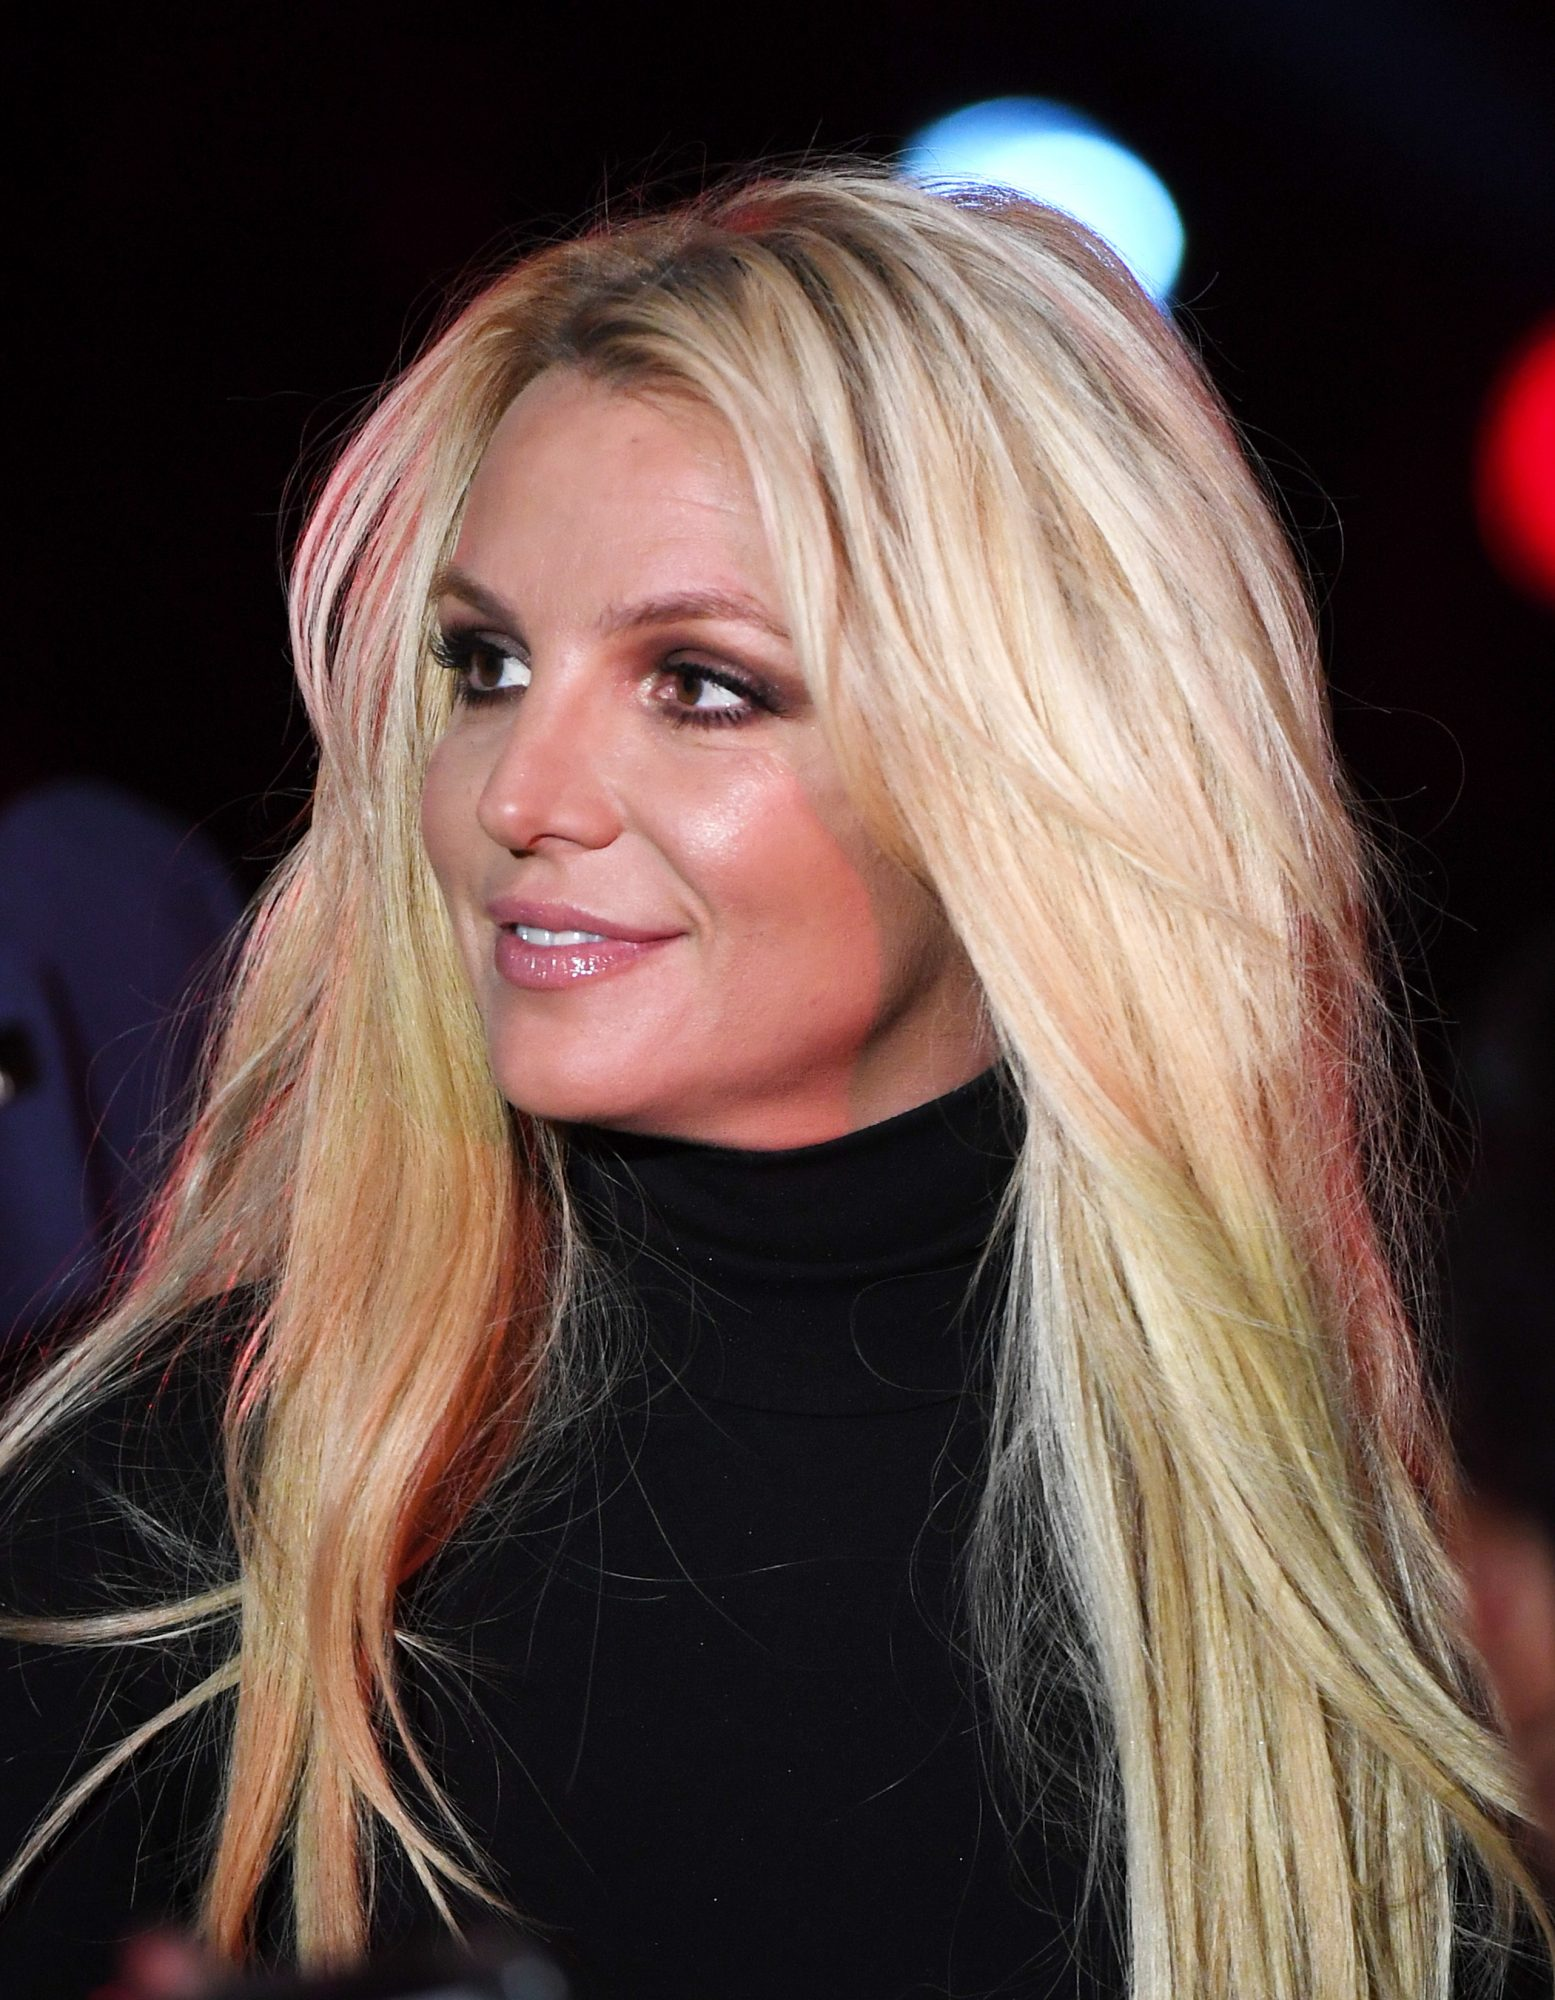 Britney Spears Says Paparazzi Have Edited Photos Of Her